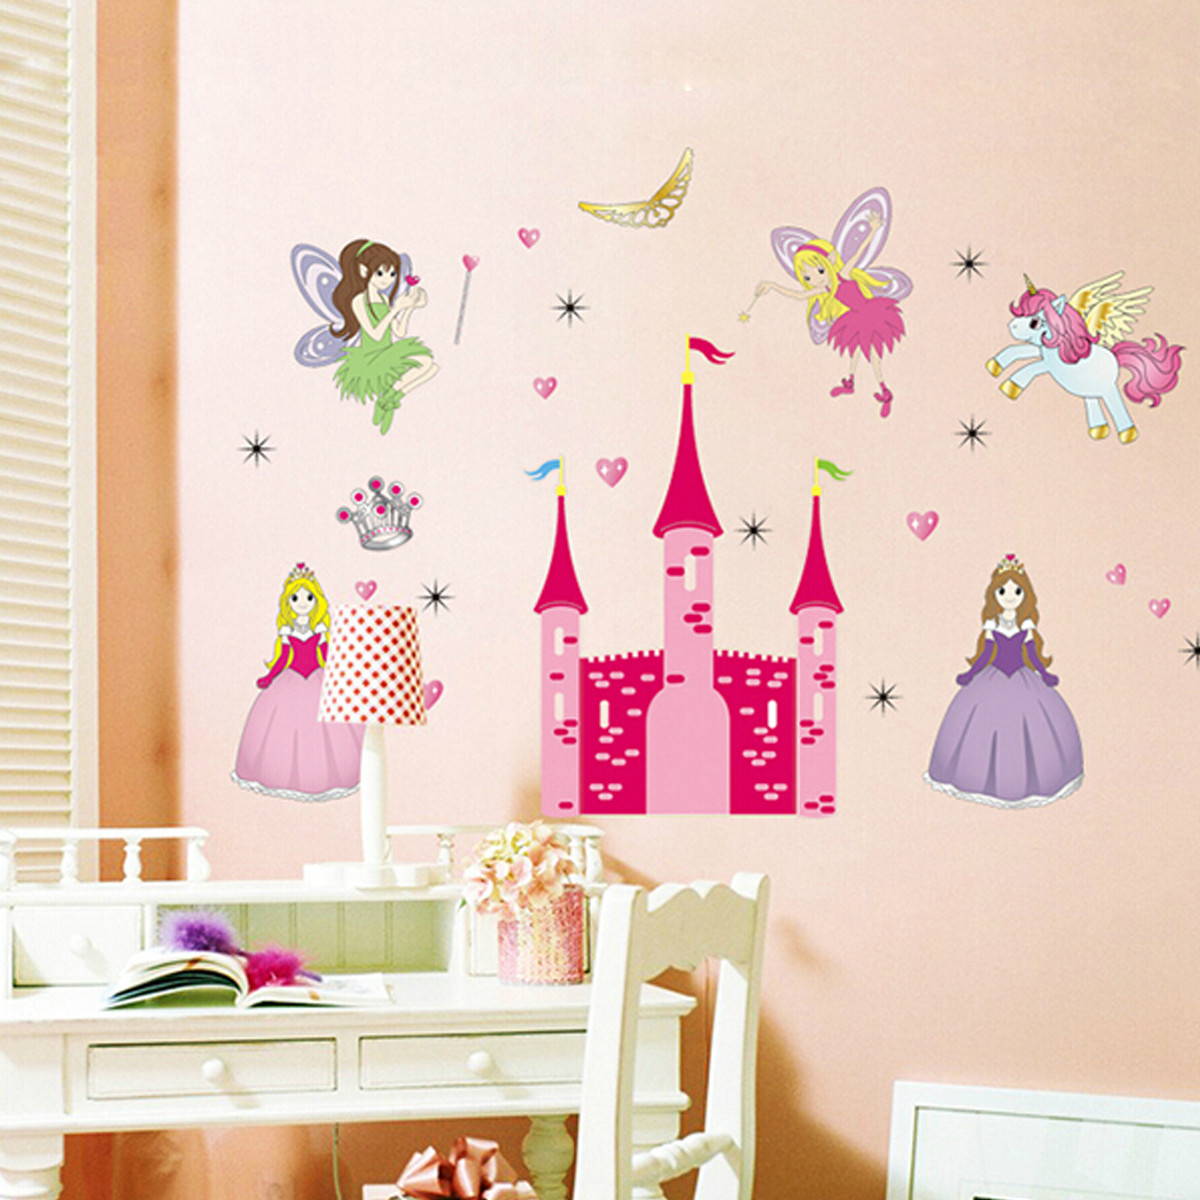 Removable vinyl mural wall sticker fairy princess castle for Fairy castle wall mural